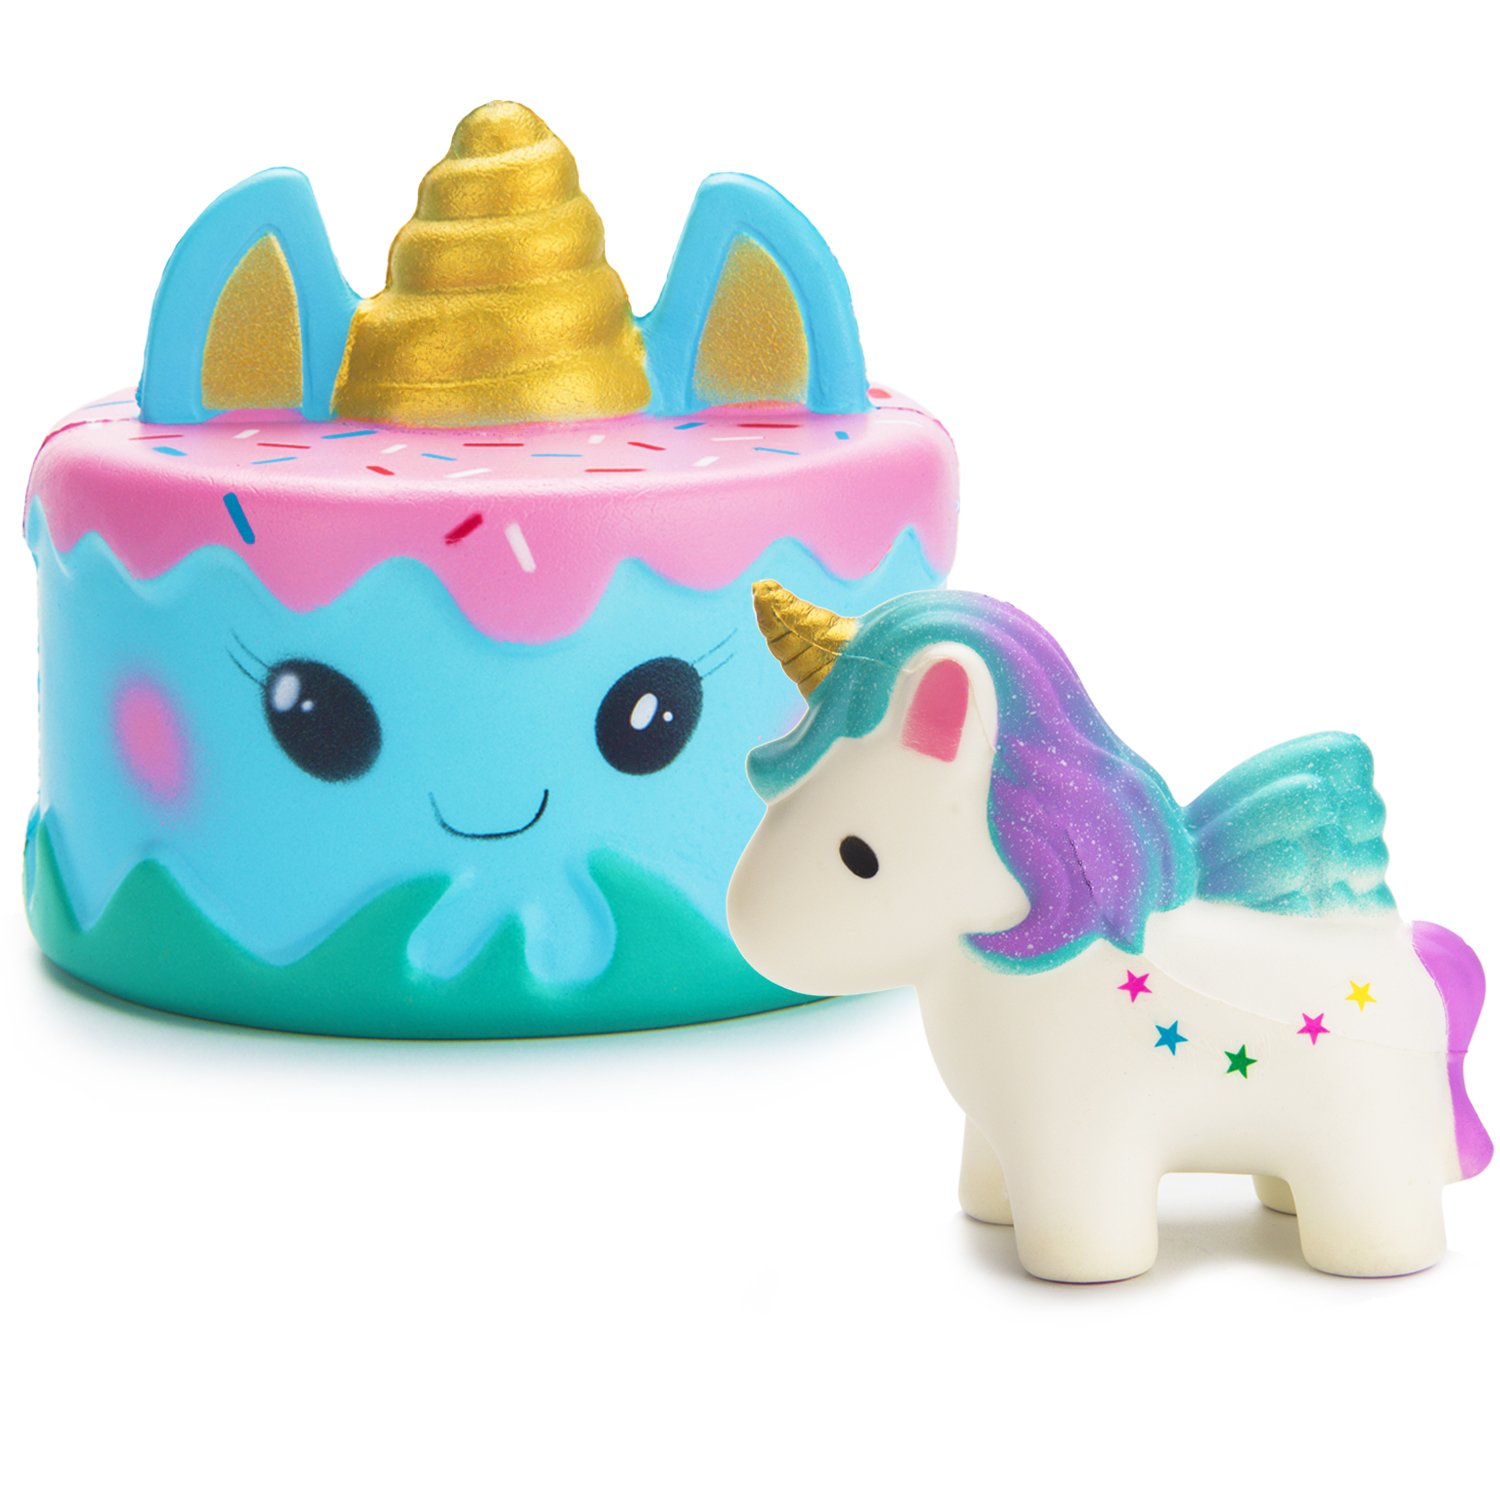 R.Horse Jumbo Squishy Kawaii Cute Unicorn Mousse Cream Scented Squishies Slow Rising Kids Toys Doll Stress Relief Toy Hop Props, Decorative Props Large (2 Pack)